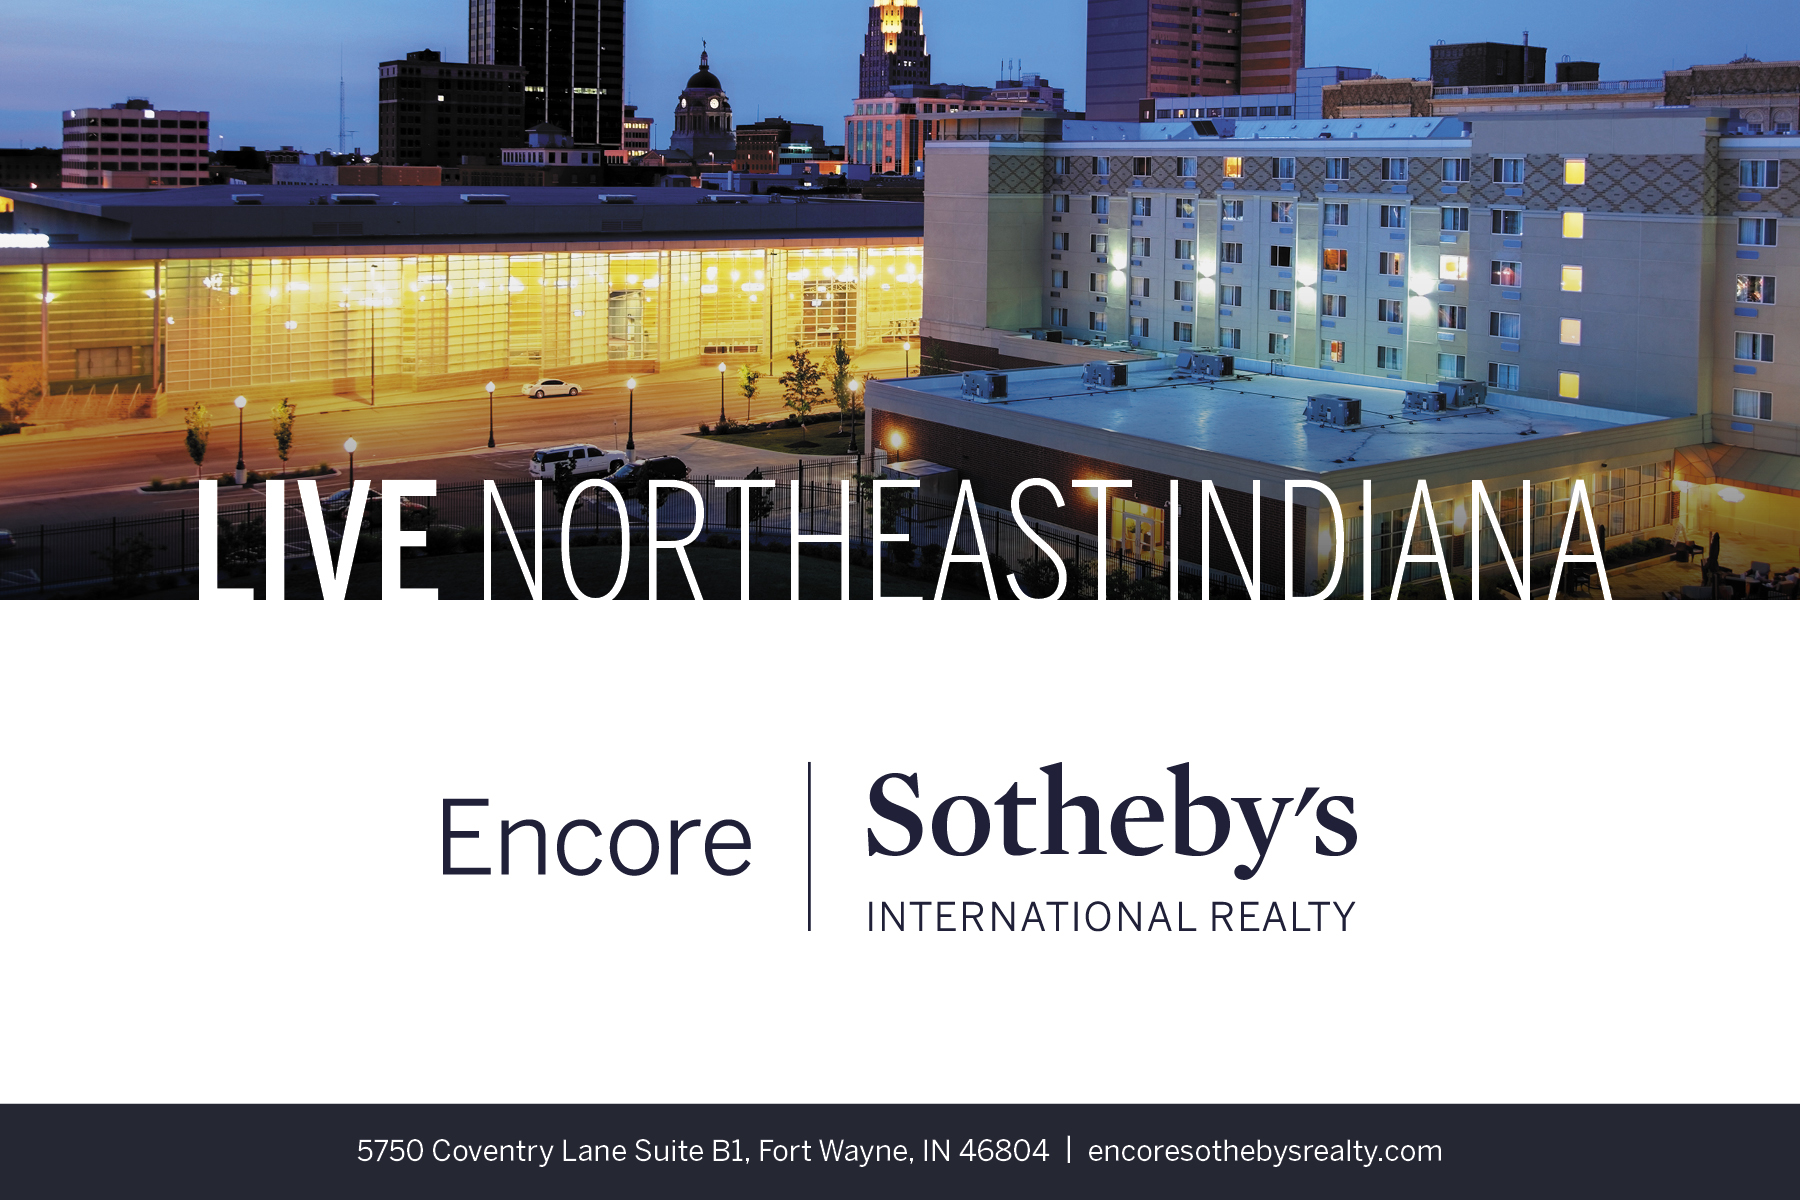 Encore Sotheby's International Realty Brand Expands Presence to Northeast Indiana